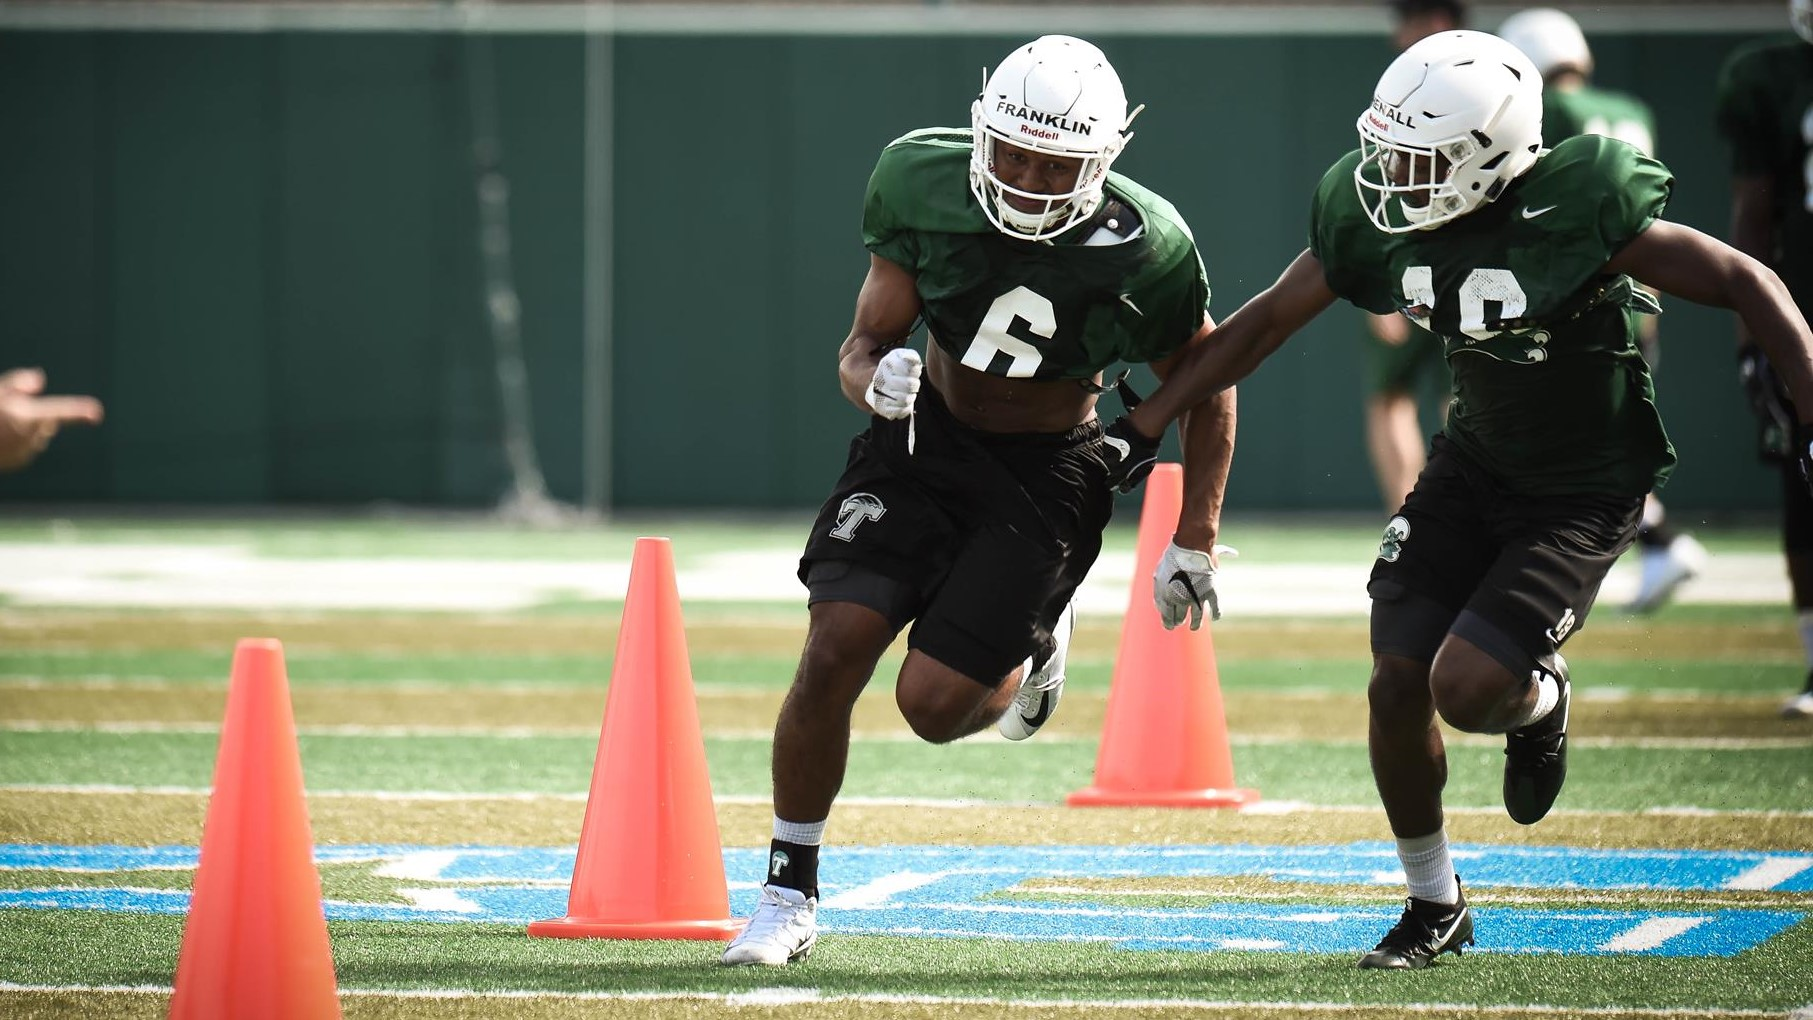 Tulane Green Wave Practice